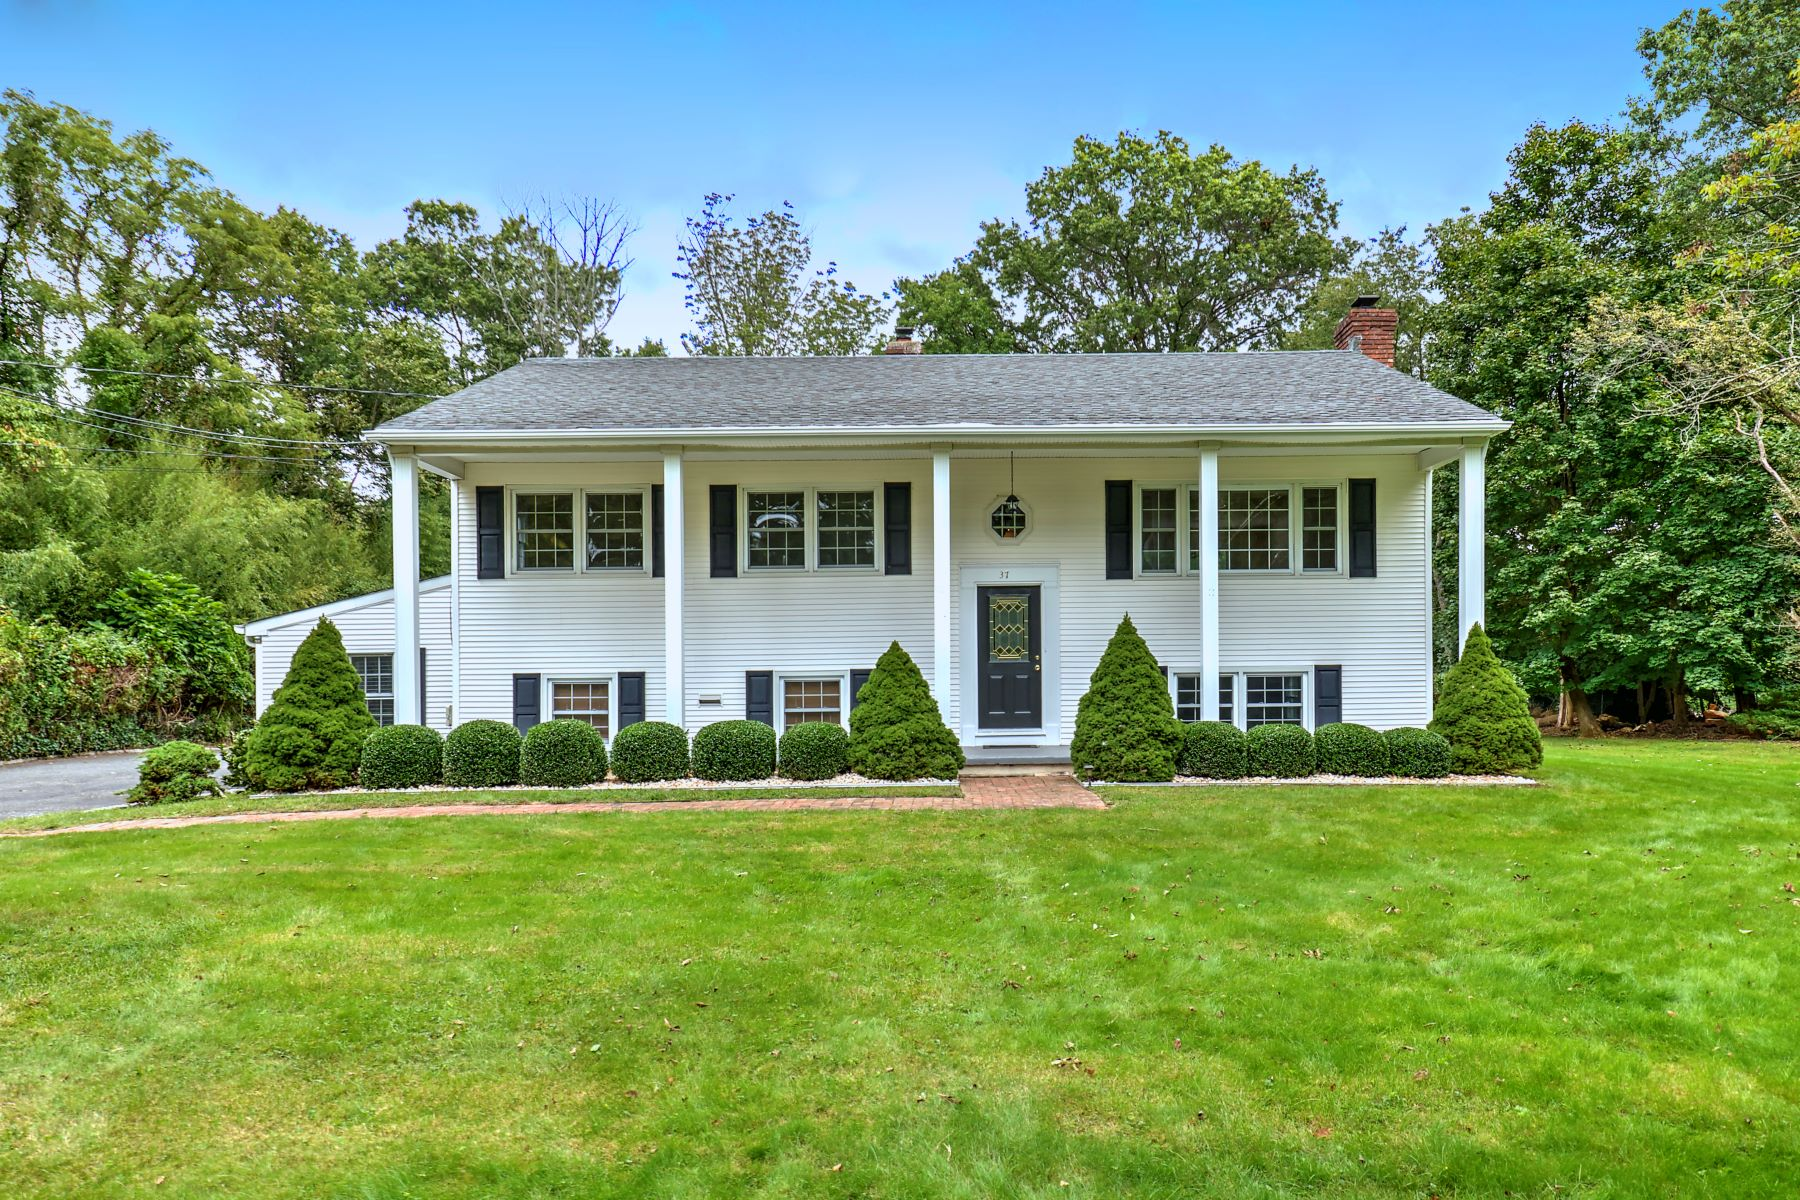 Single Family Homes pour l Vente à Immaculate Home in Desirable Basking Ridge 37 Parkview Avenue, Basking Ridge, New Jersey 07920 États-Unis